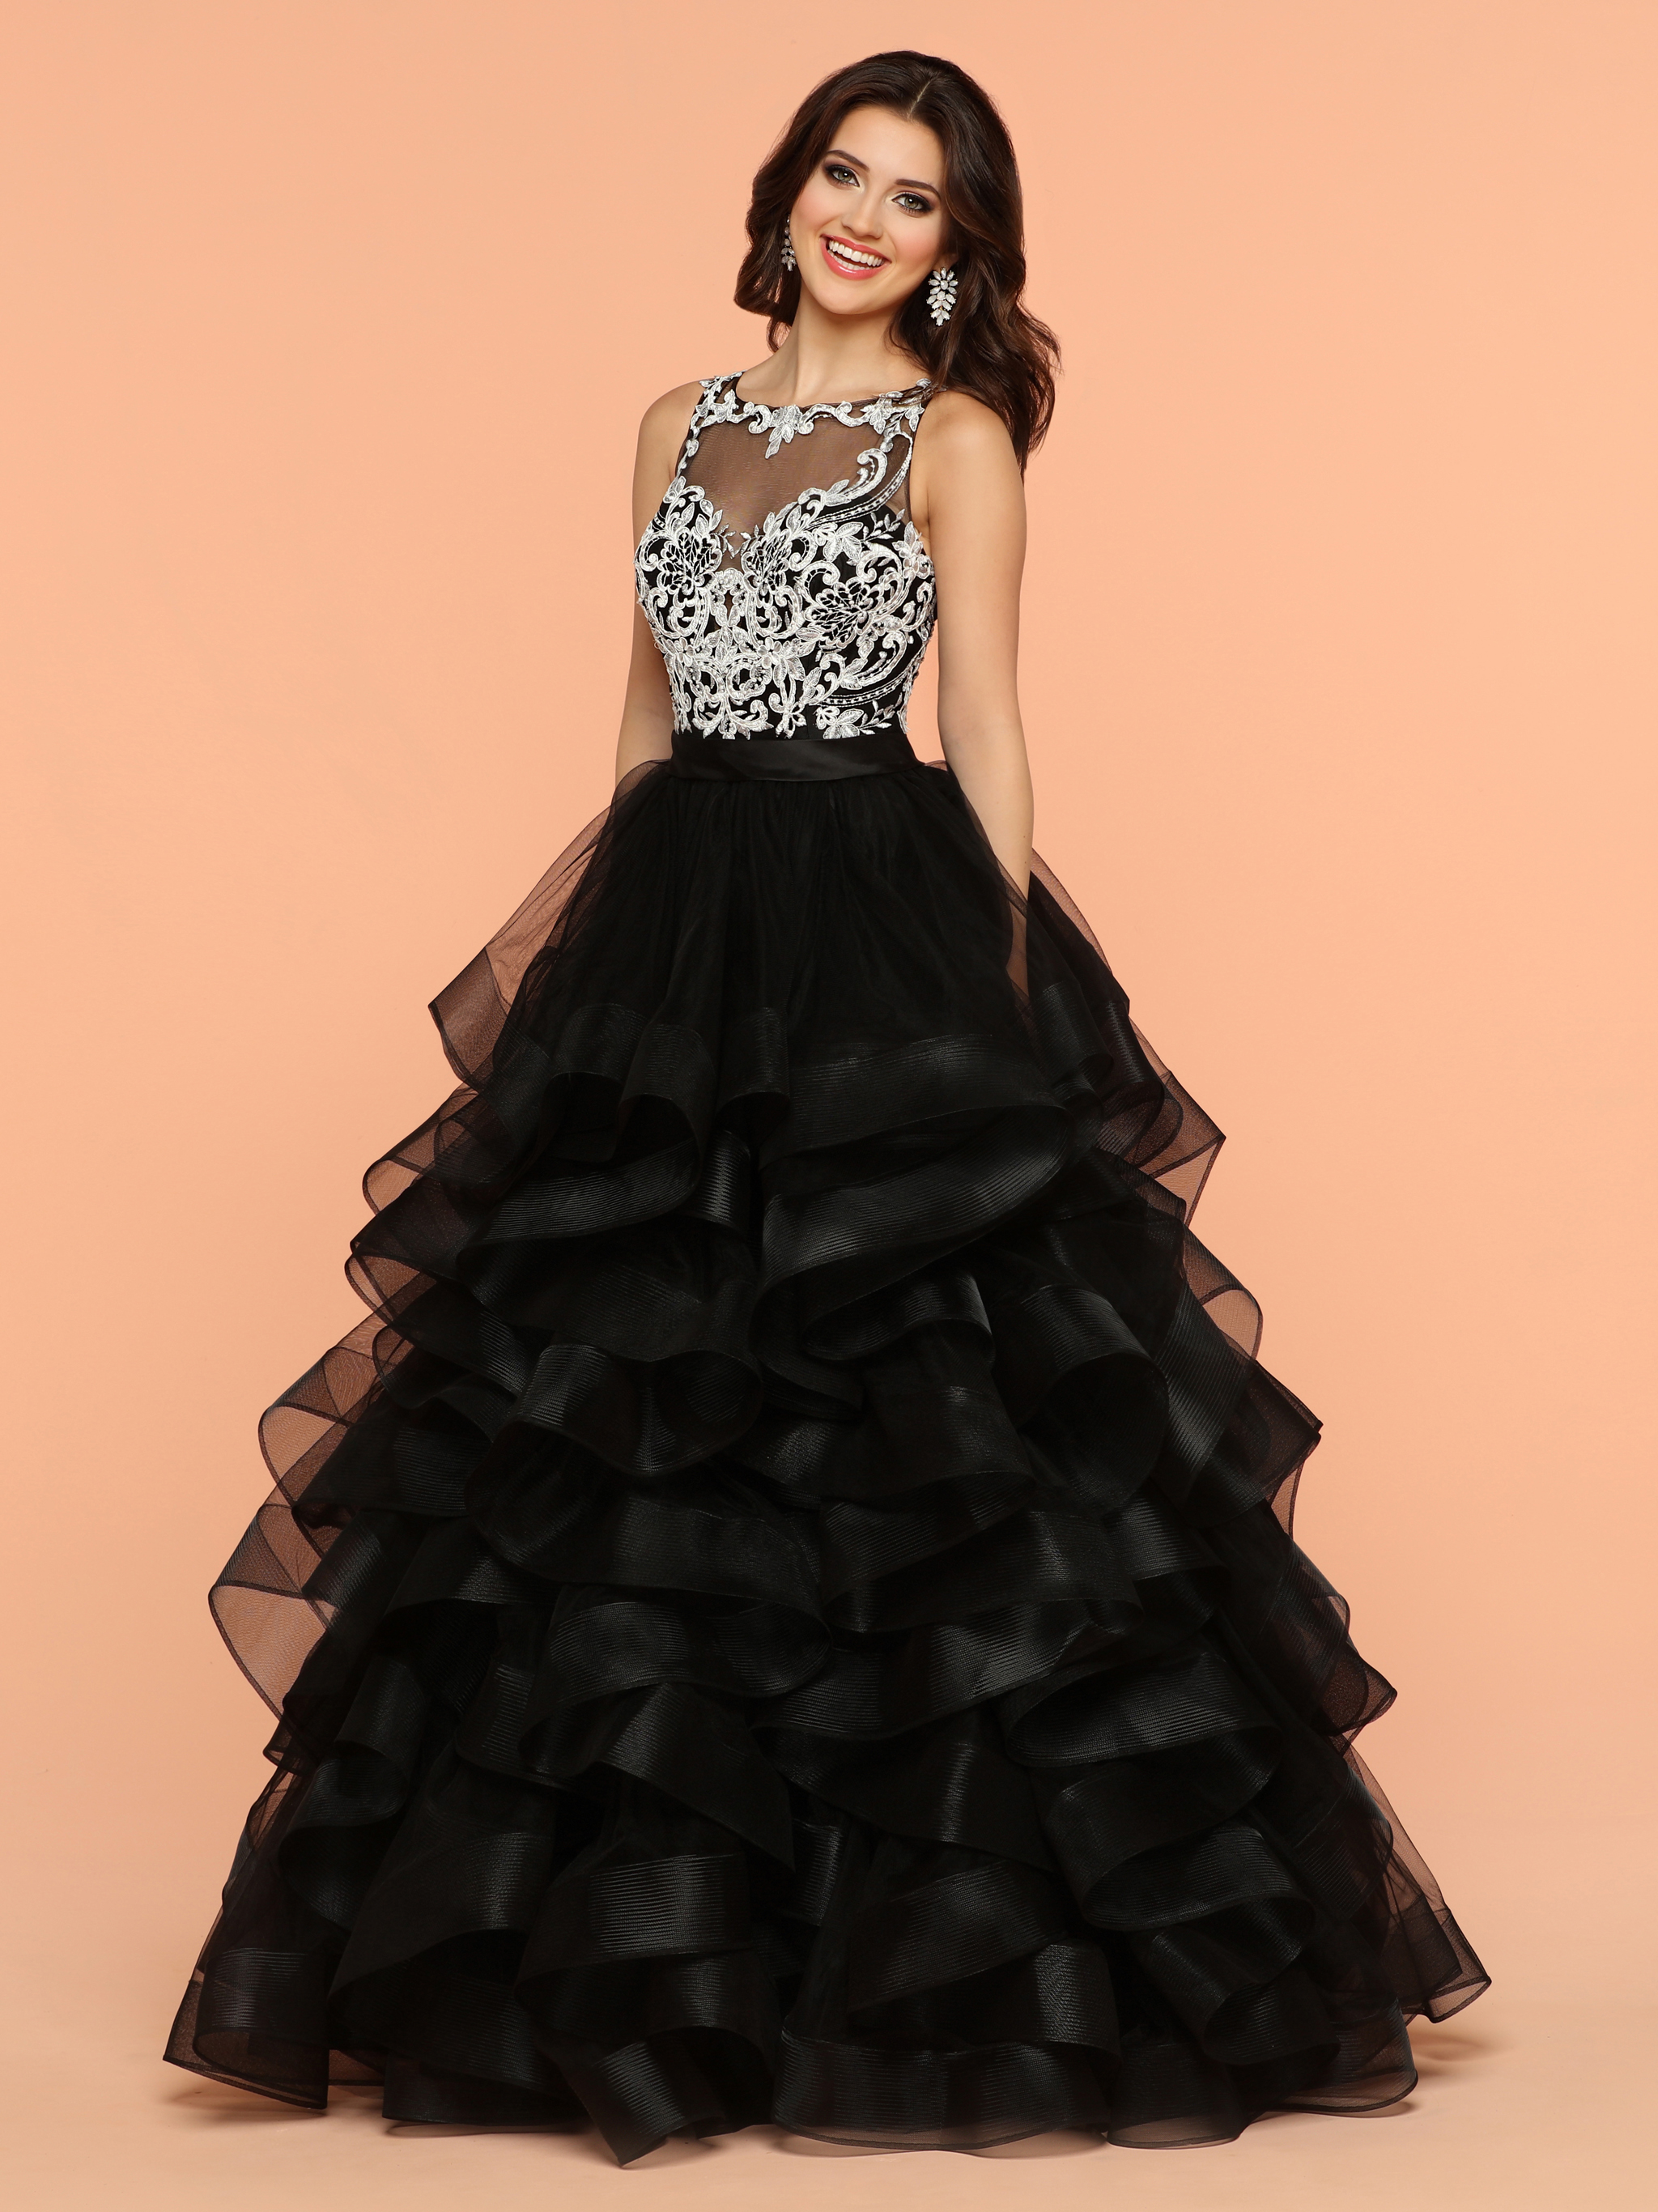 56a8102c7f1422 Top Prom Dress Trends 2019: Ball Gown Prom Dresses – Sparkle Prom Blog